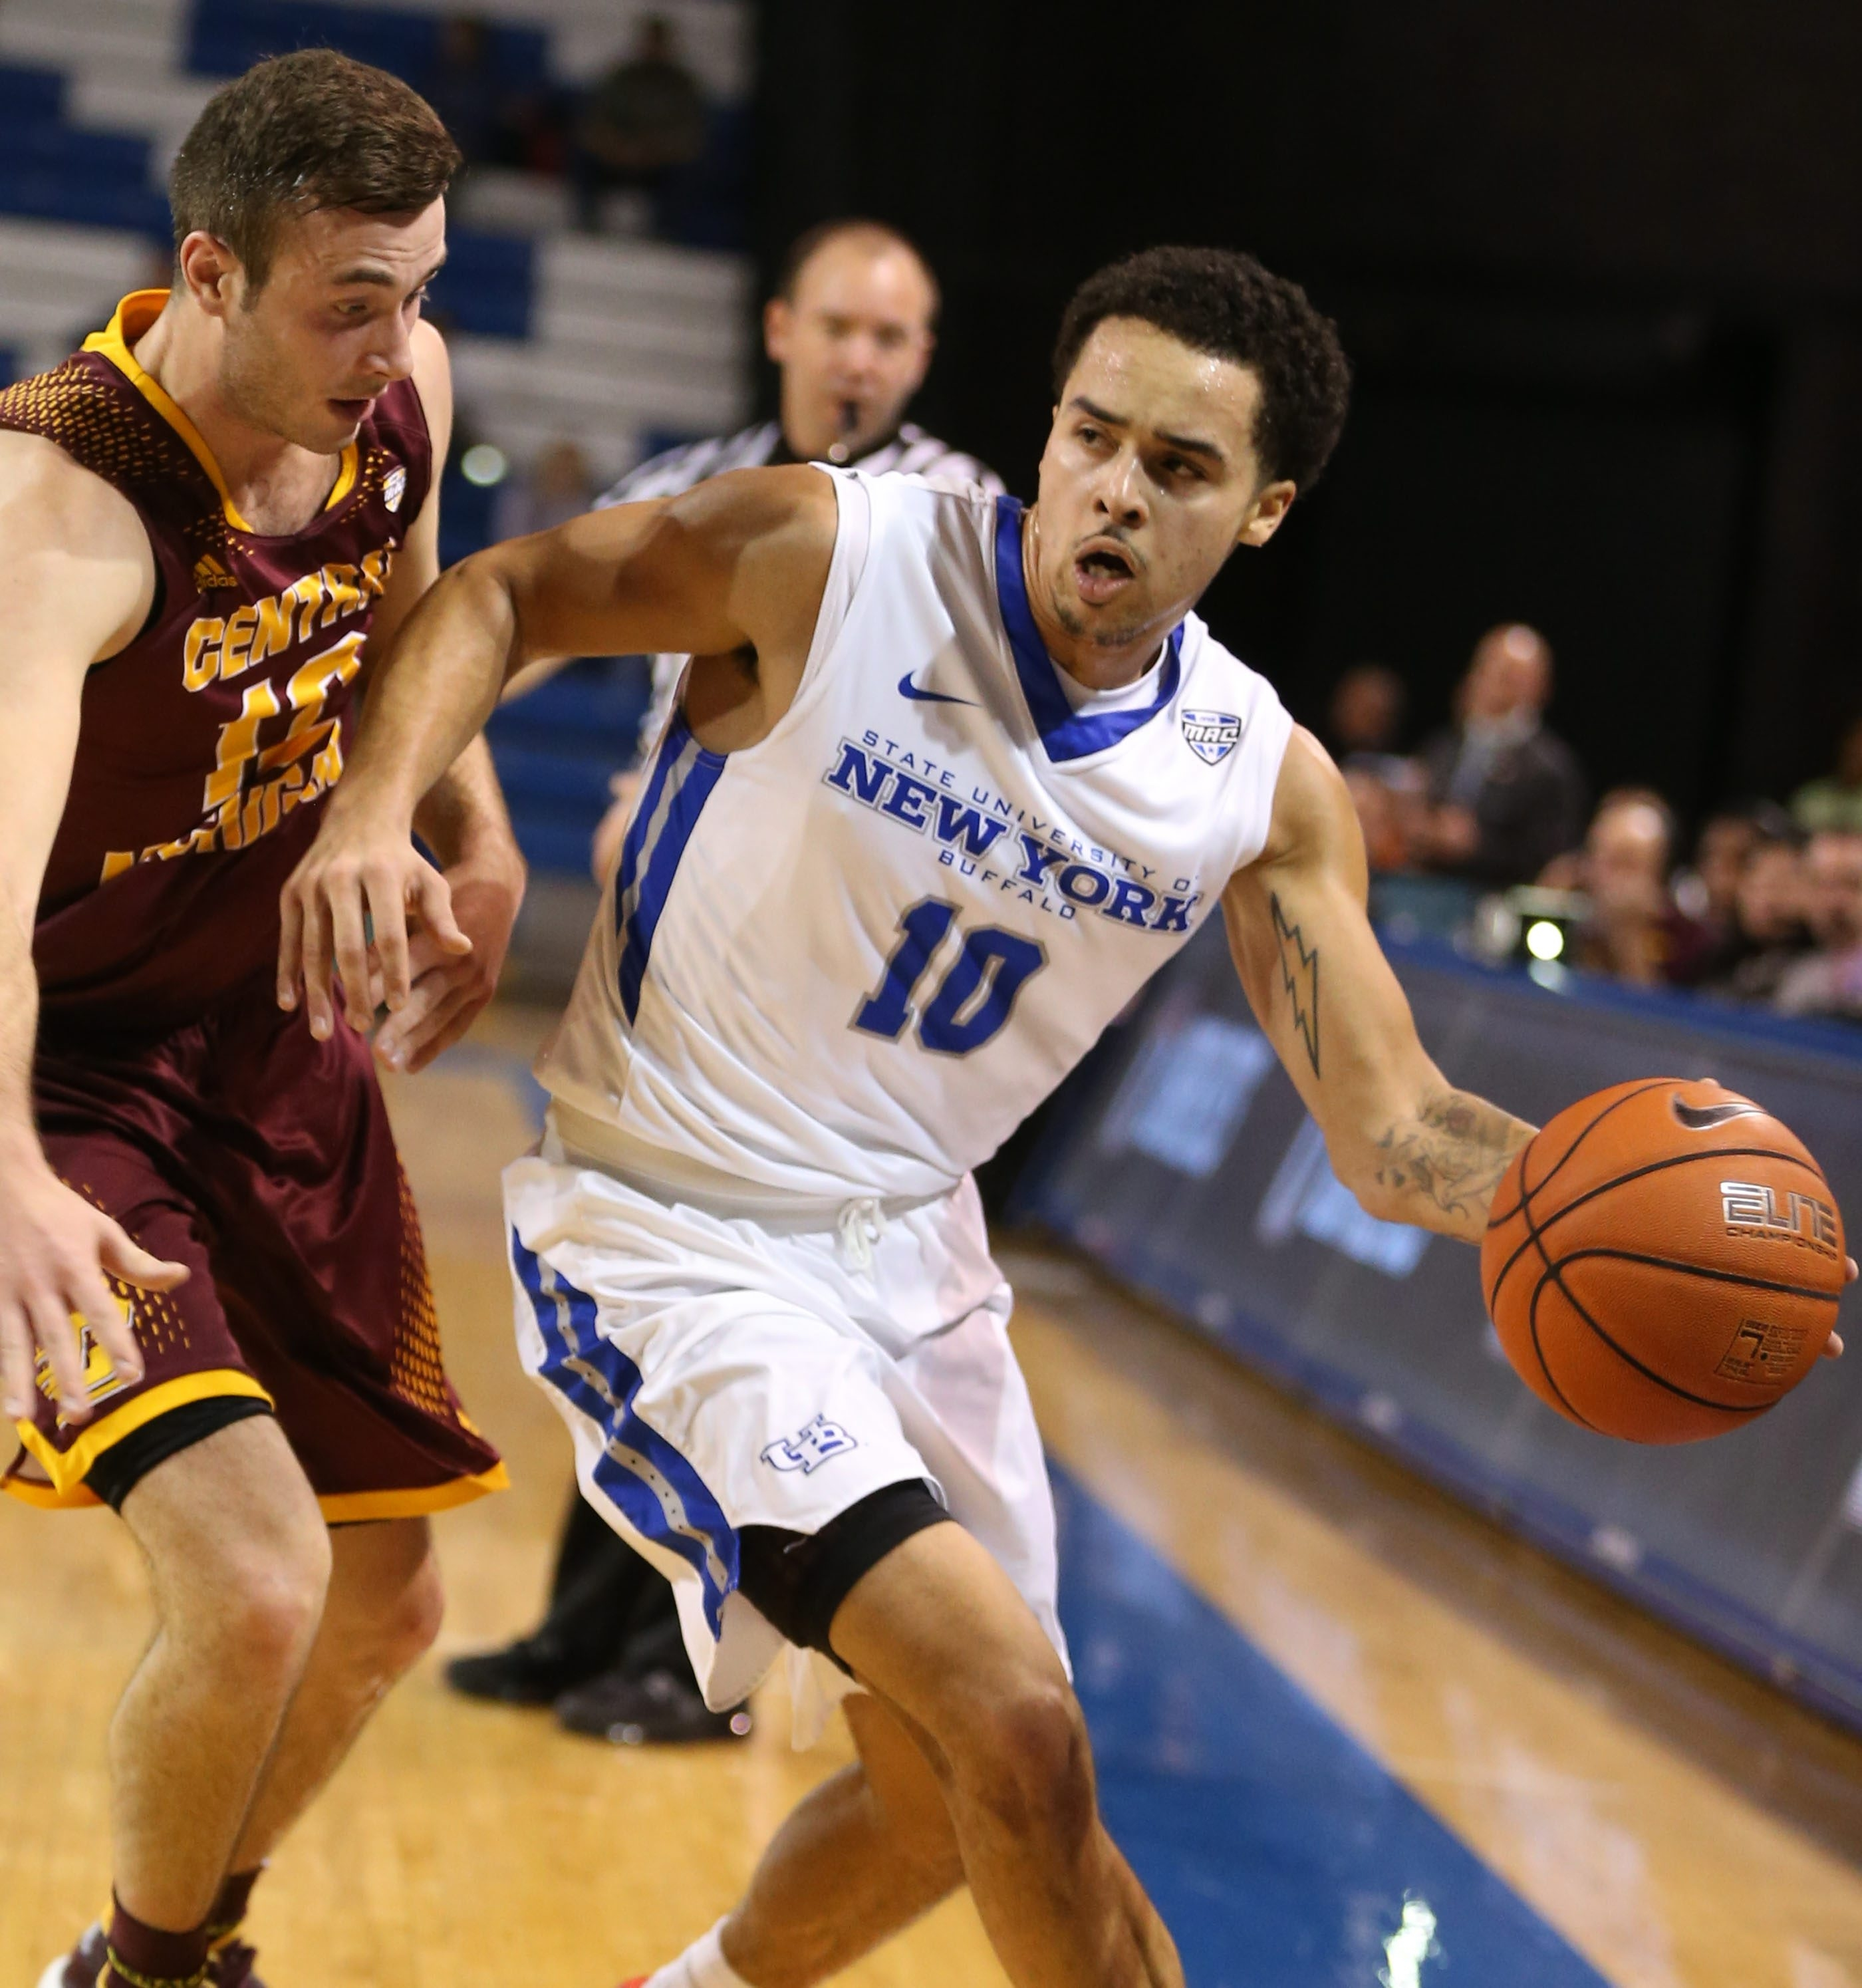 Jarryn Skeete, playing against Central Michigan, is the only current Bull to have played for coaches Reggie Witherspoon, Bobby Hurley and Nate Oats. (James P. McCoy/Buffalo News file photo)